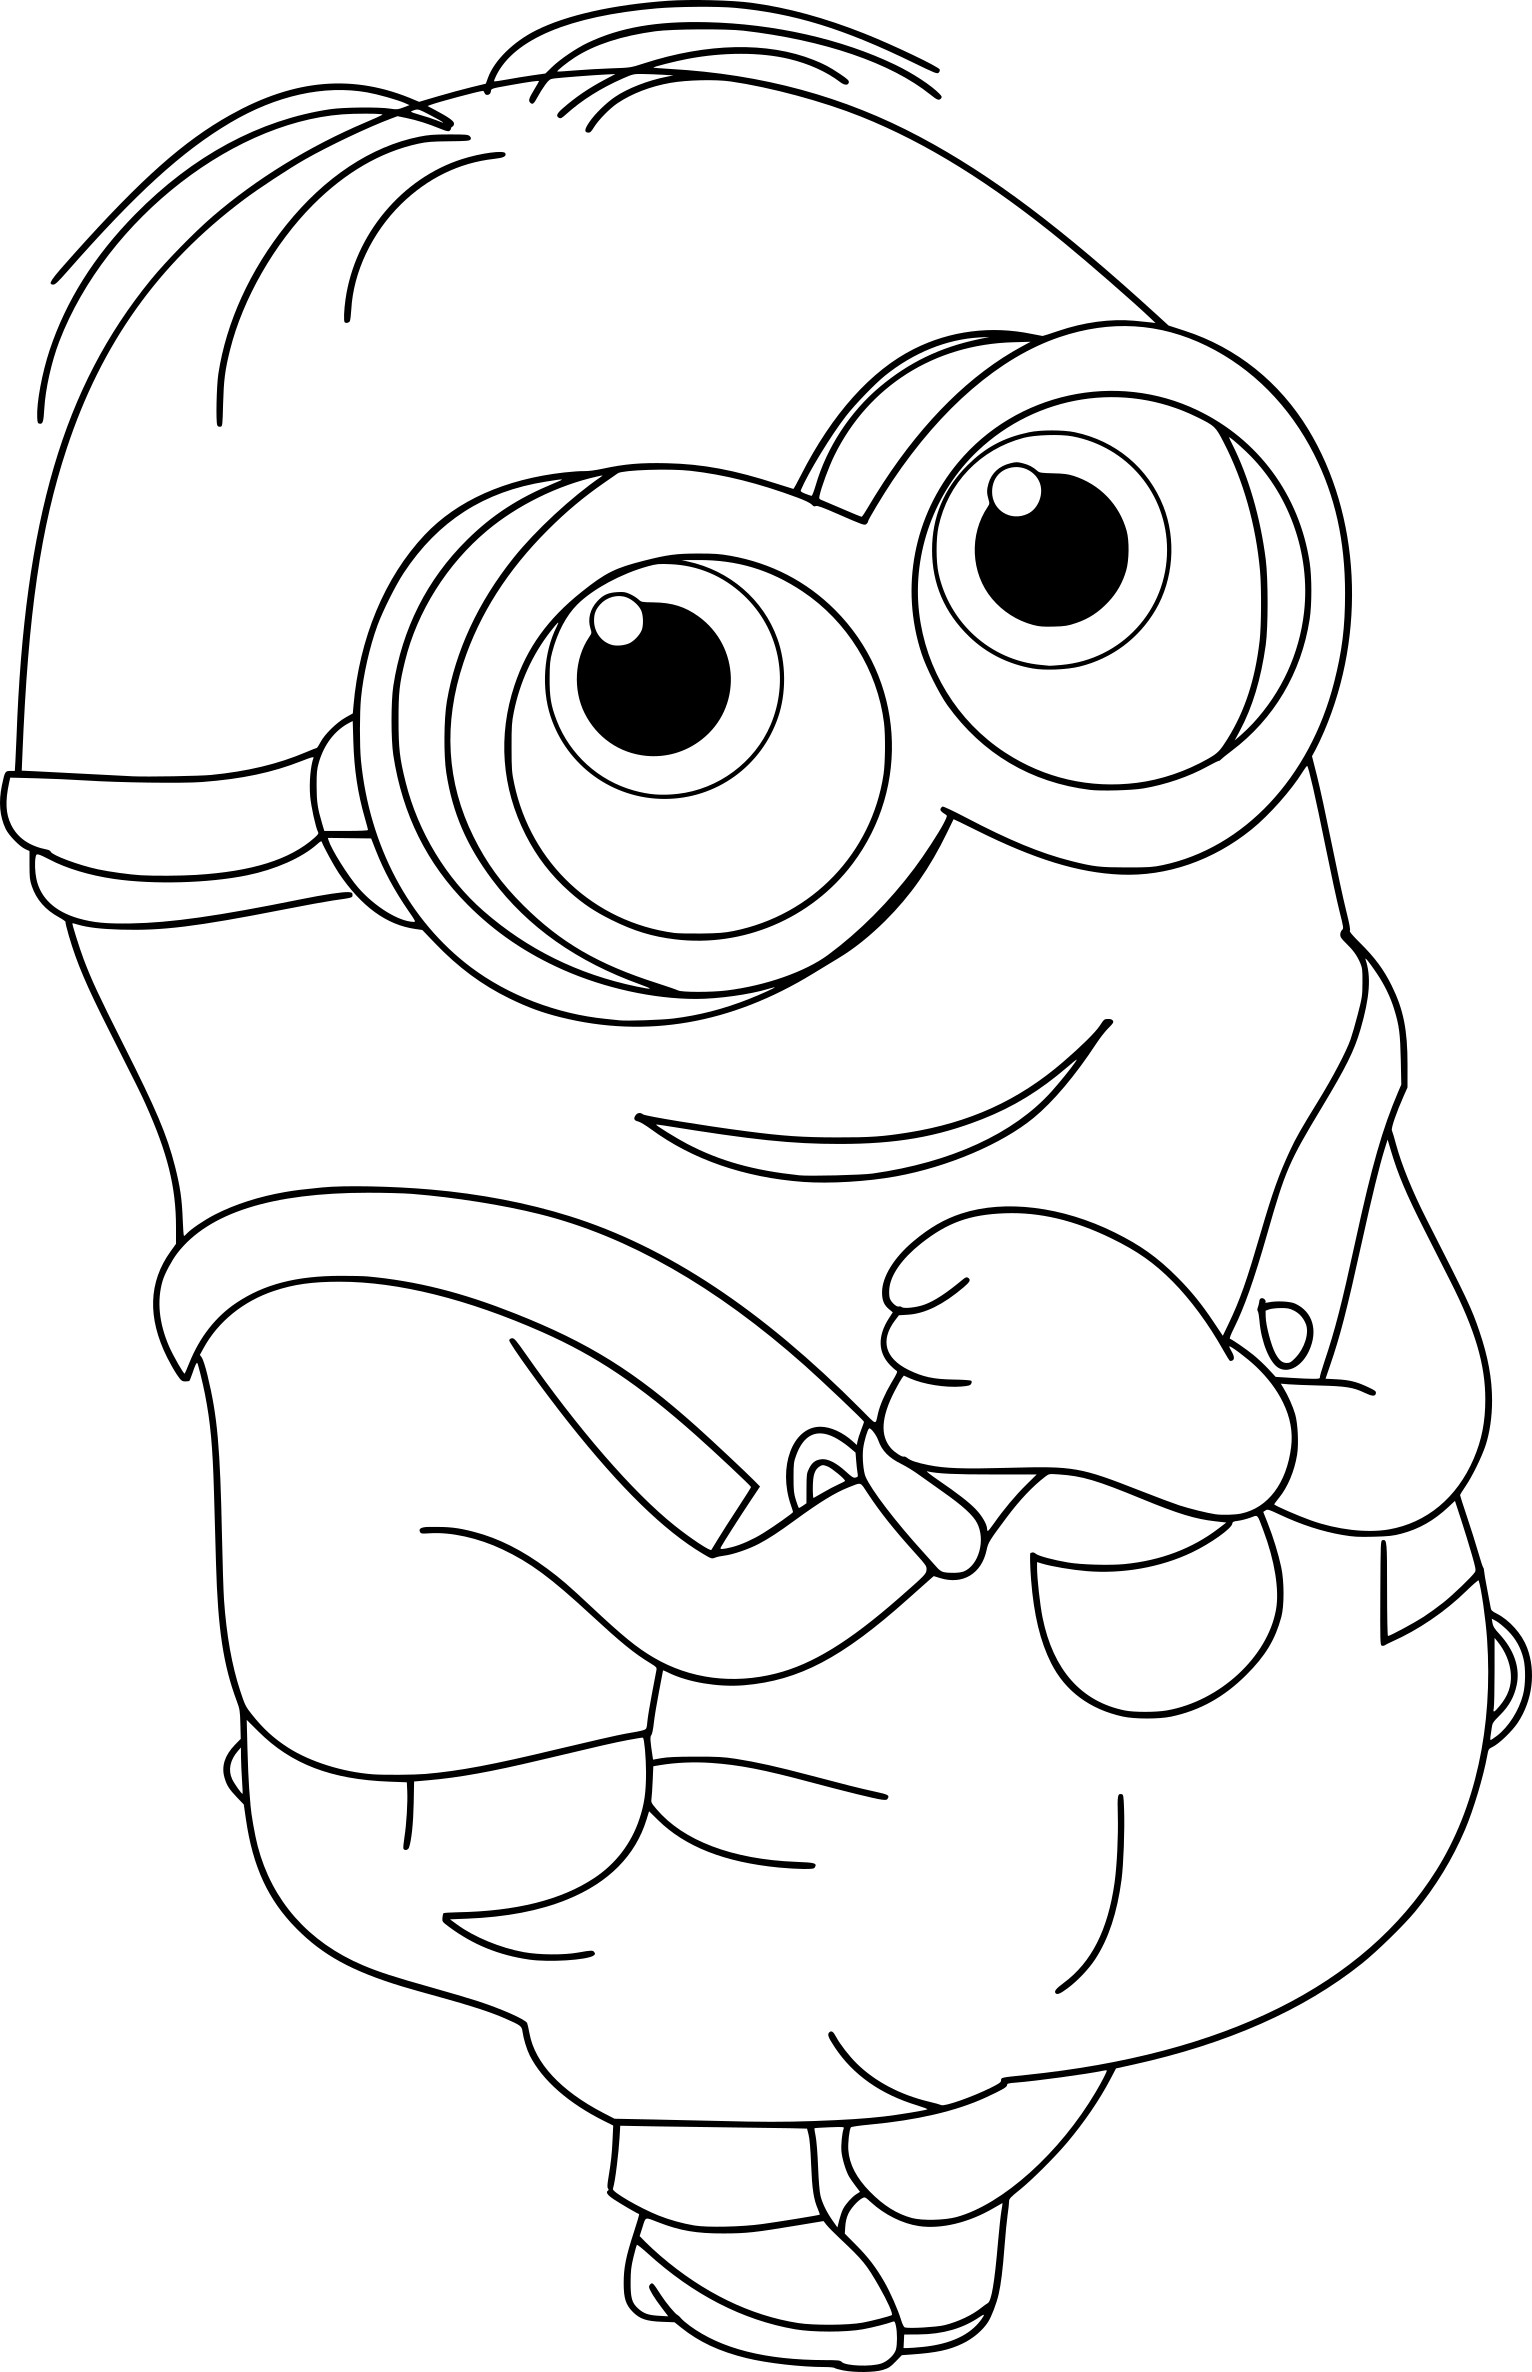 minion tim coloring pages - photo#27